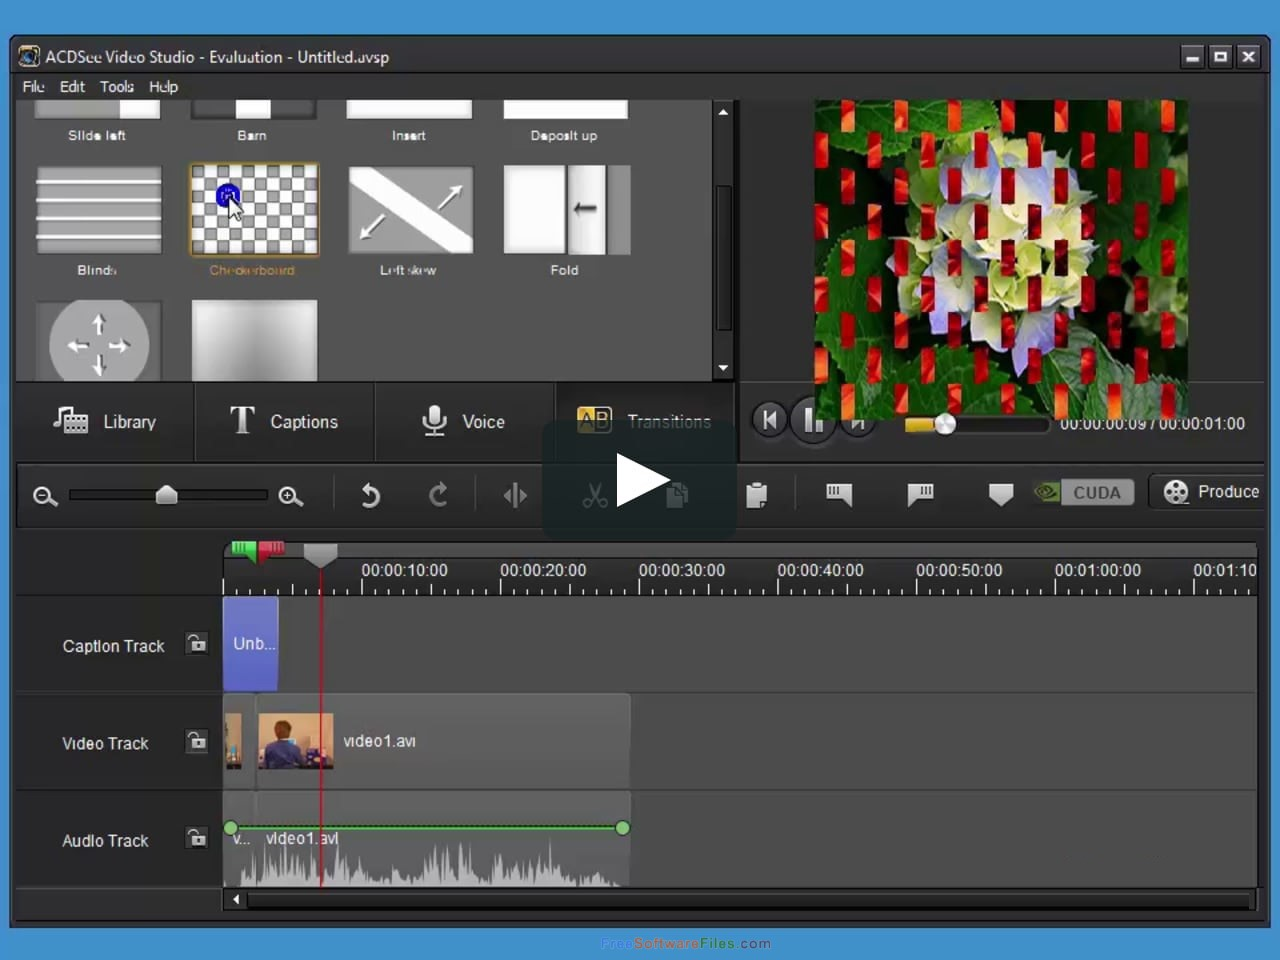 ACDSee Video Studio 3.0 Free Download for Windows PC